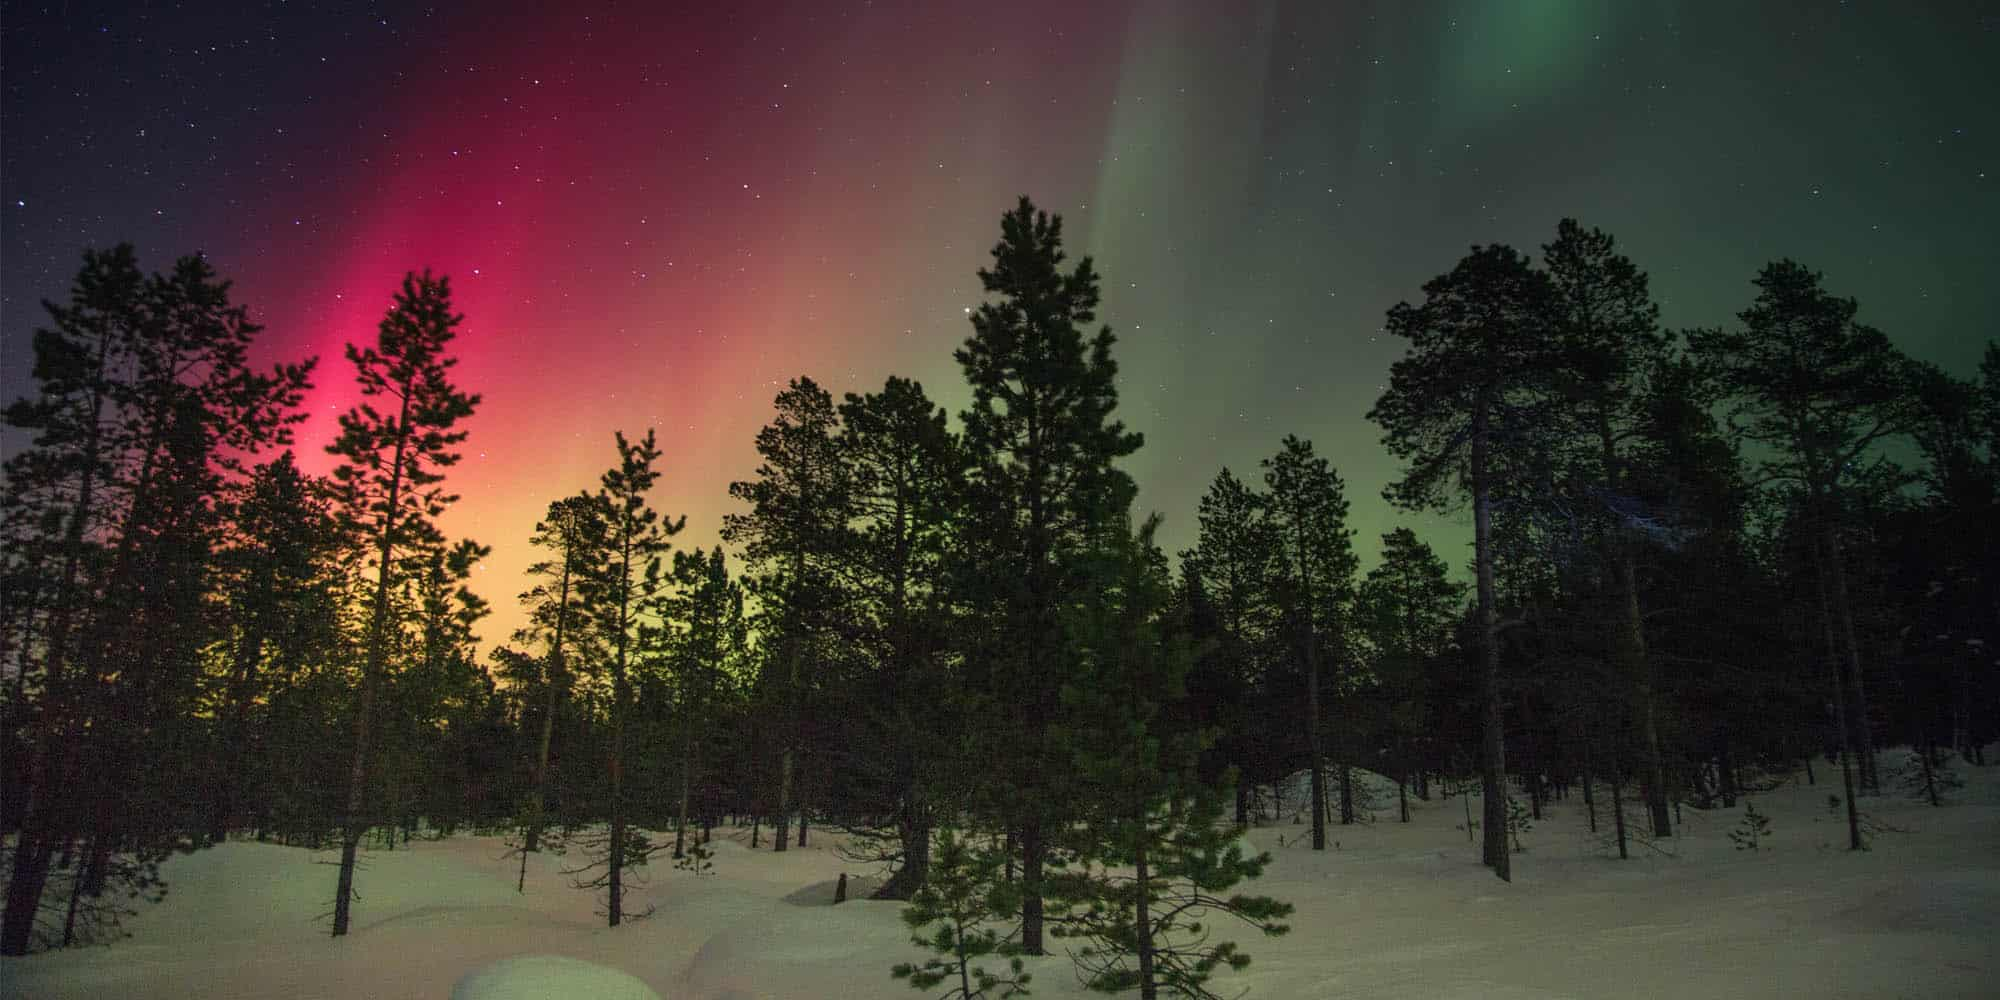 Trees and the Northern Lights